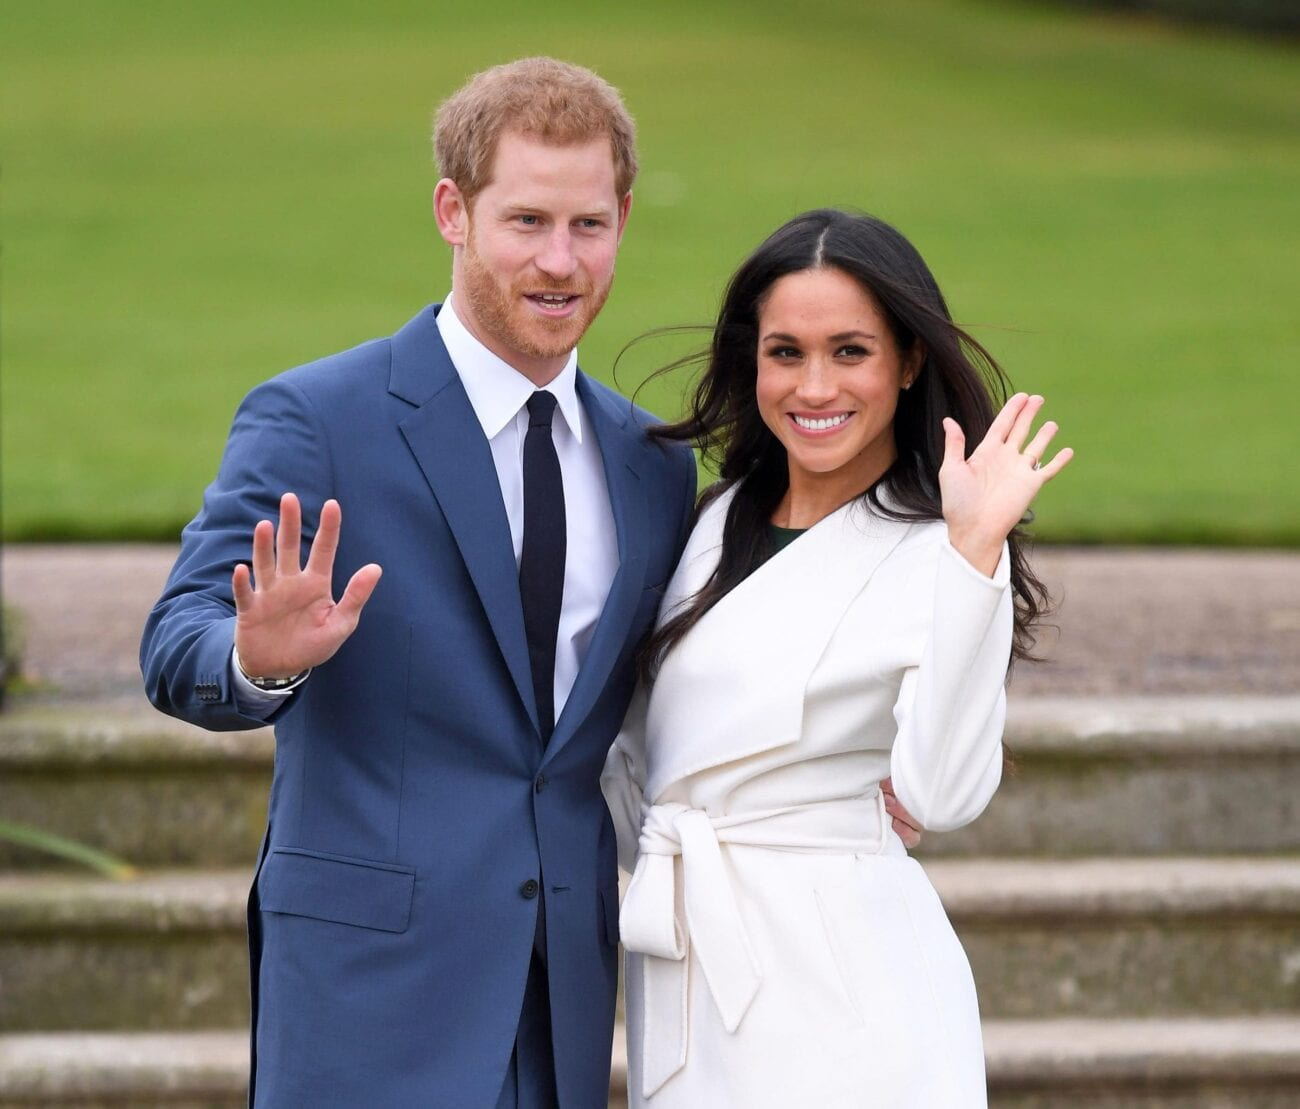 Prince Harry & Meghan Markle made the move into a $14.65 million Montecito mansion in CA. Have things already taken a turn for the worst?